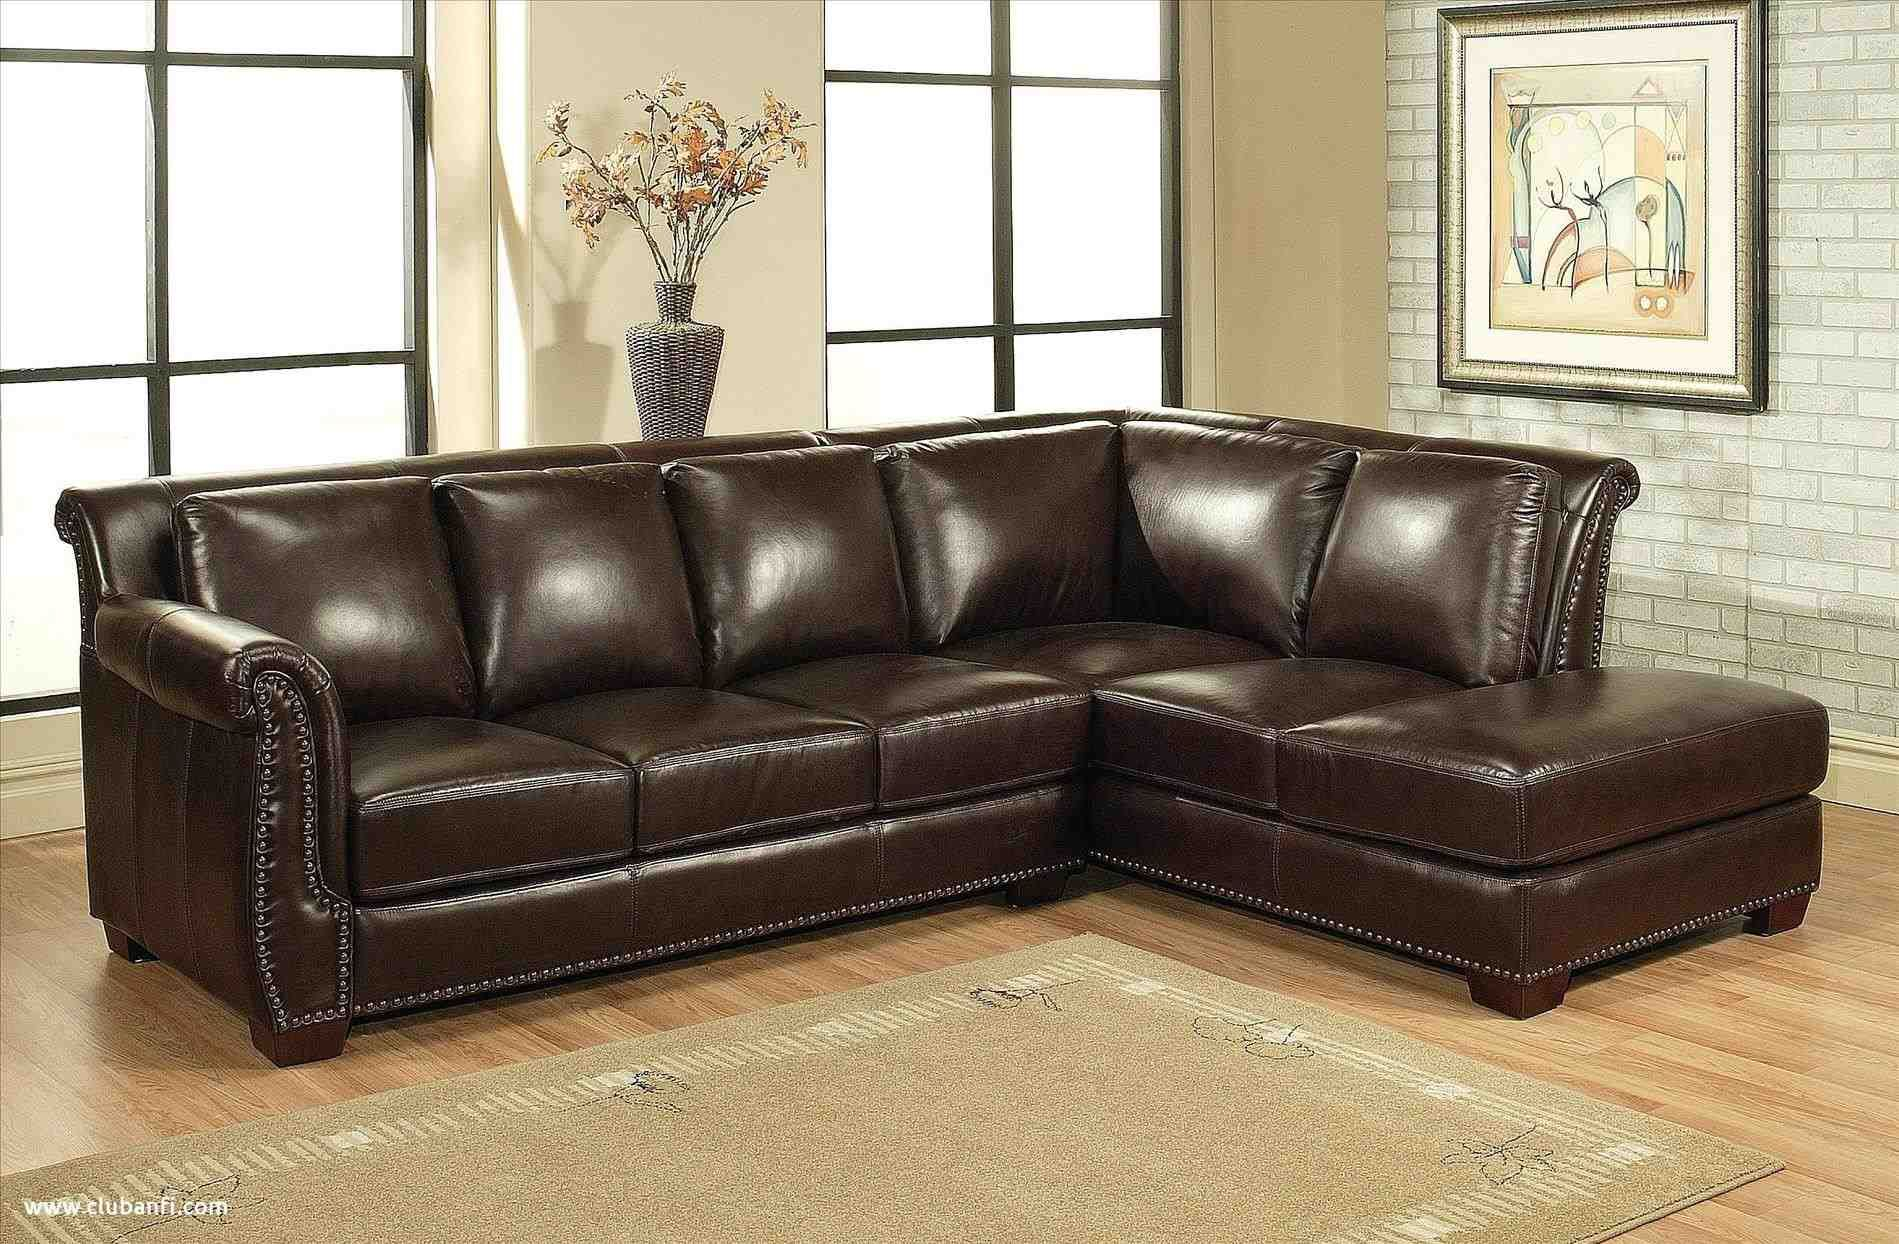 Cheap Fabric Sofa Singapore Eight Way Hand Tied Manufacturers Leather Sofas Perth Wa Brokeasshome